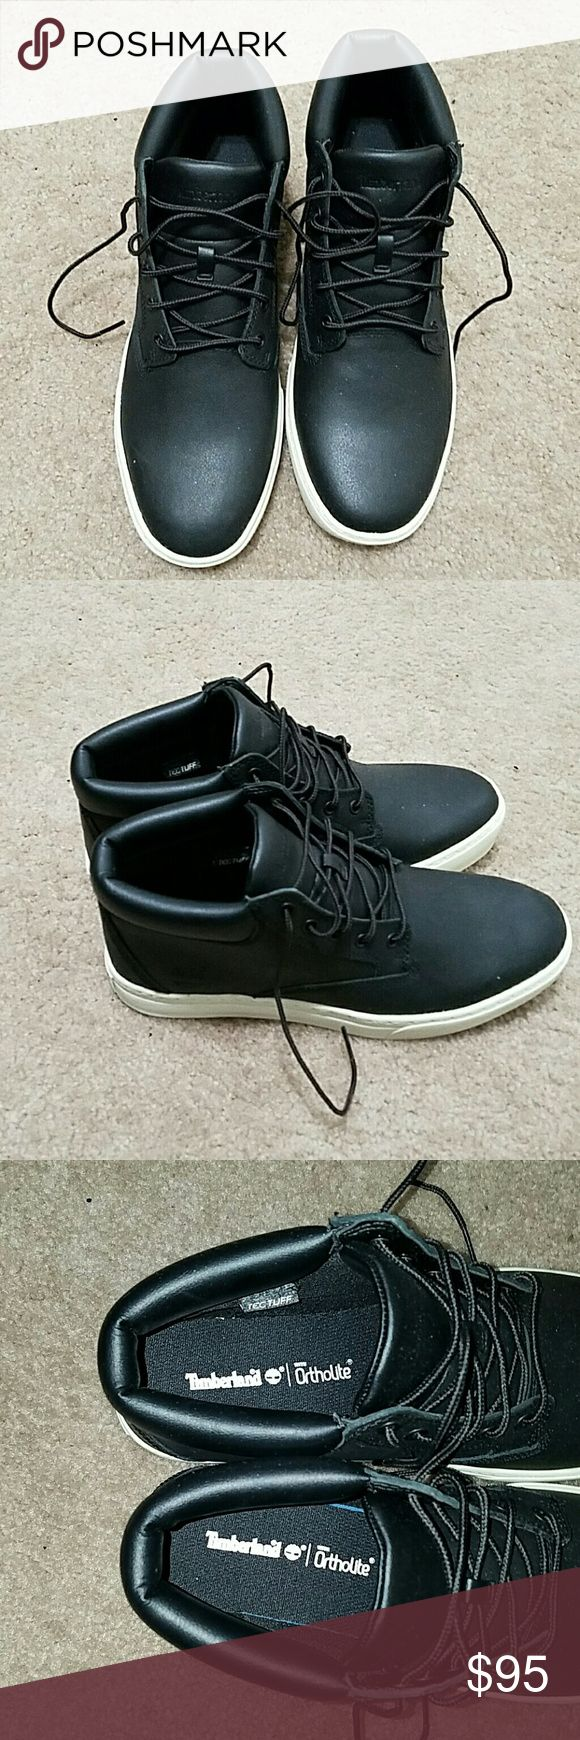 Boots For sale or better offer Timberland Shoes Boots